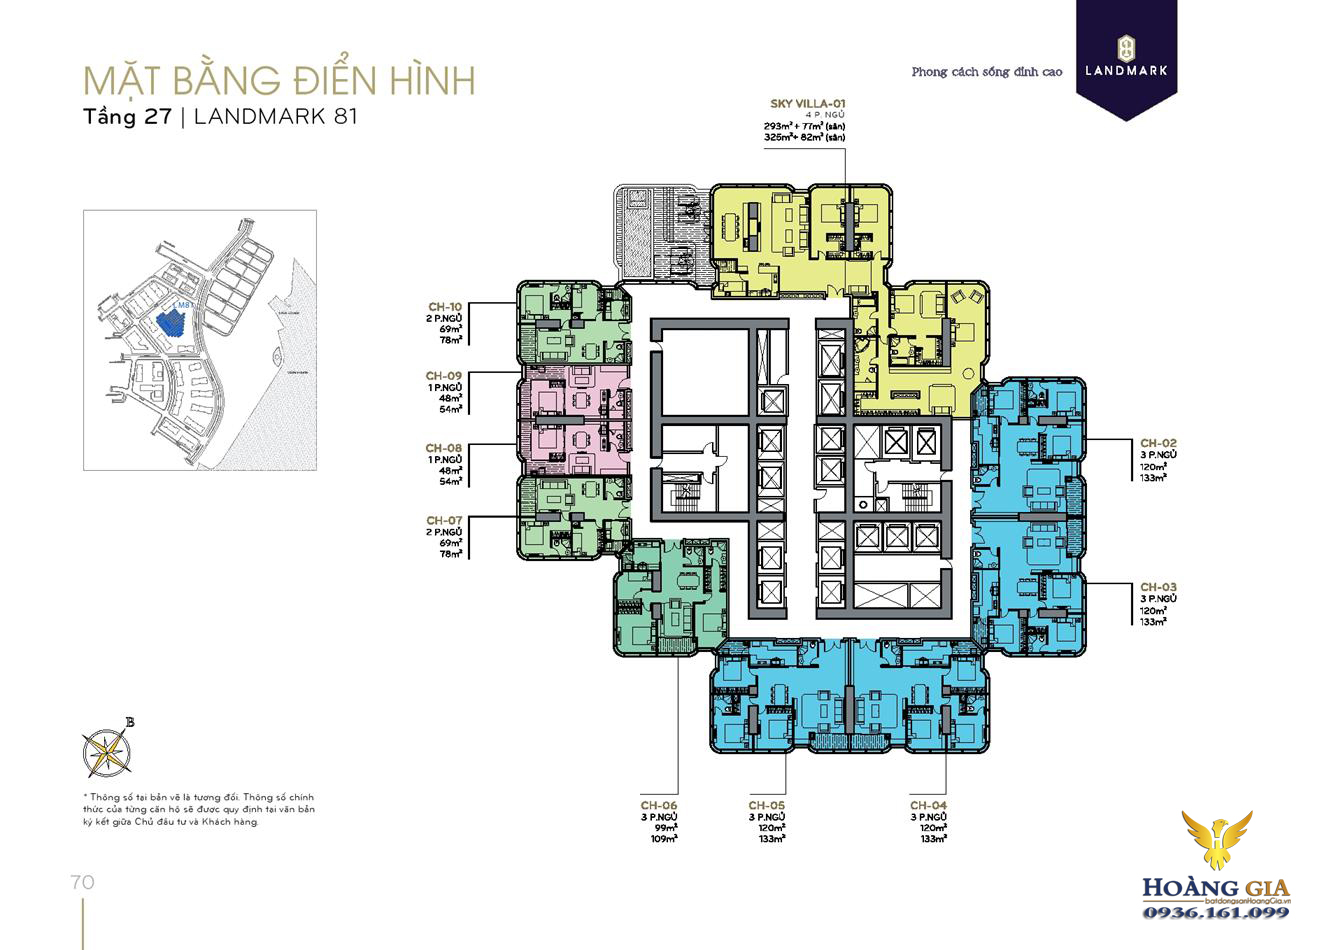 Mặt bằng tầng 27 Vinhomes Central Park